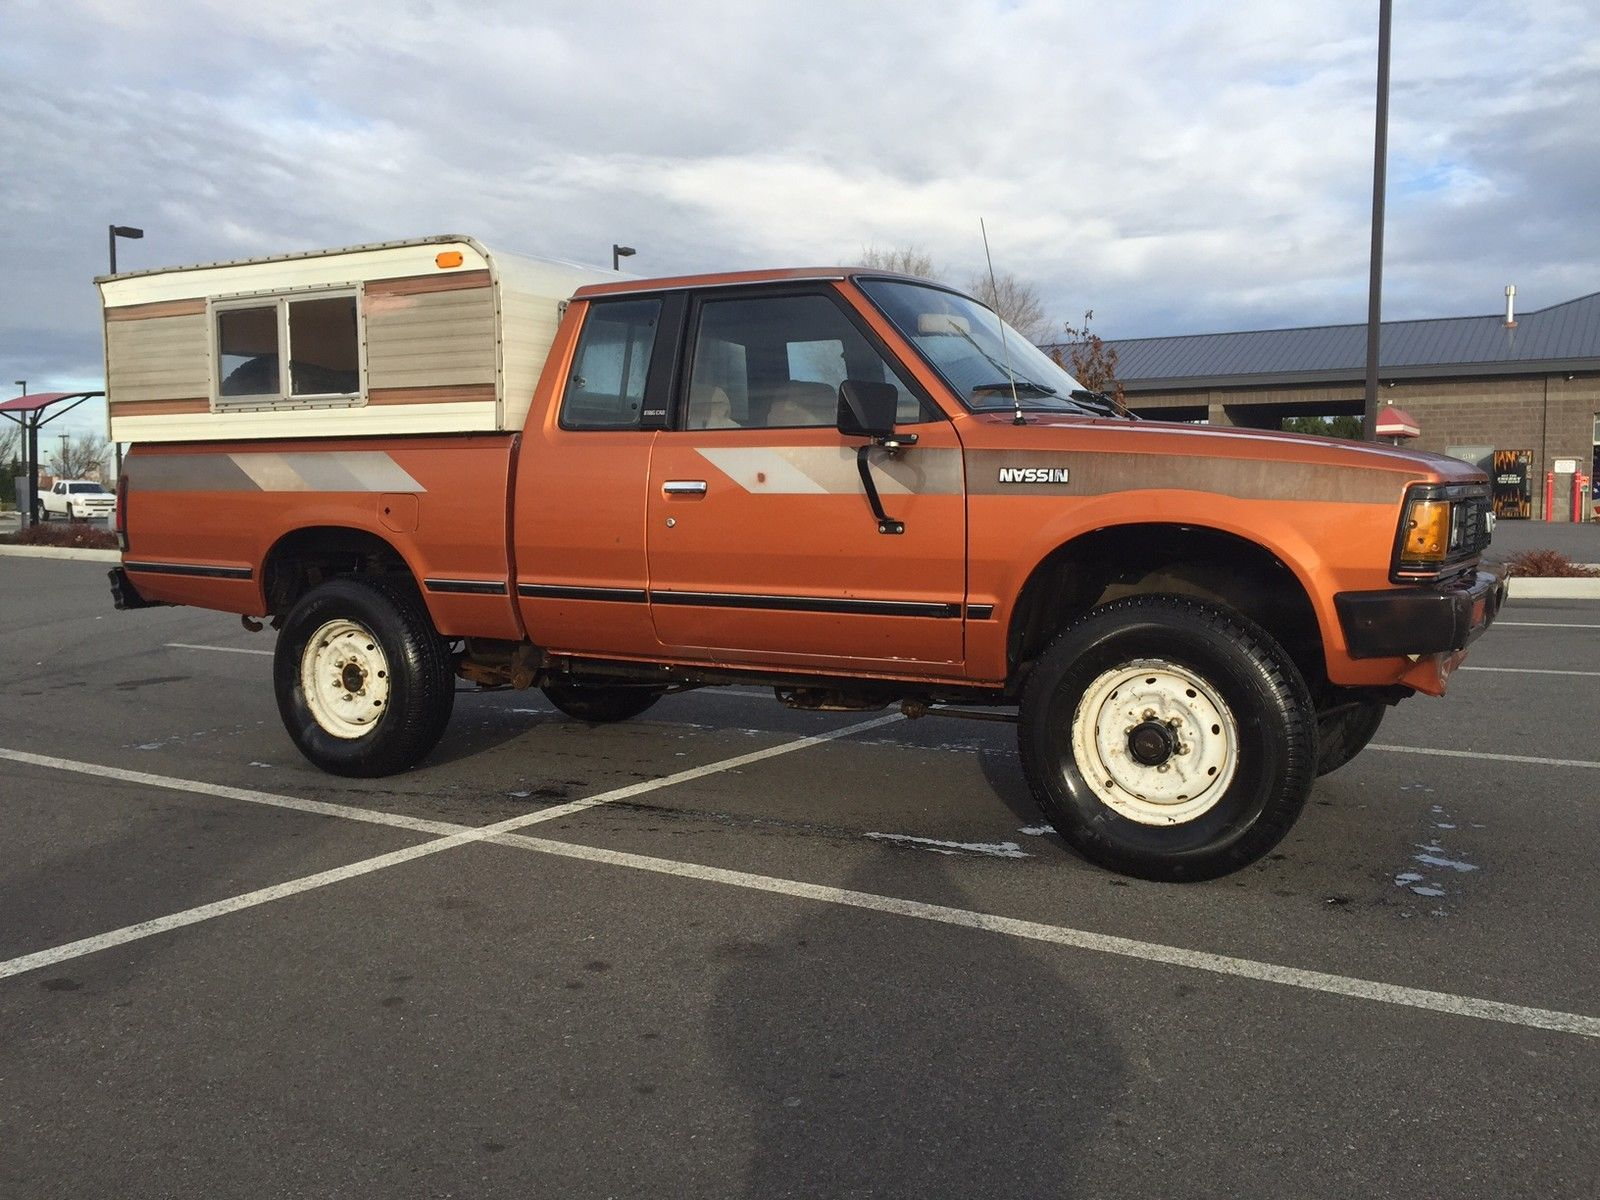 1982 datsun nissan 720 king cab 4x4 pick up truck 2600 in